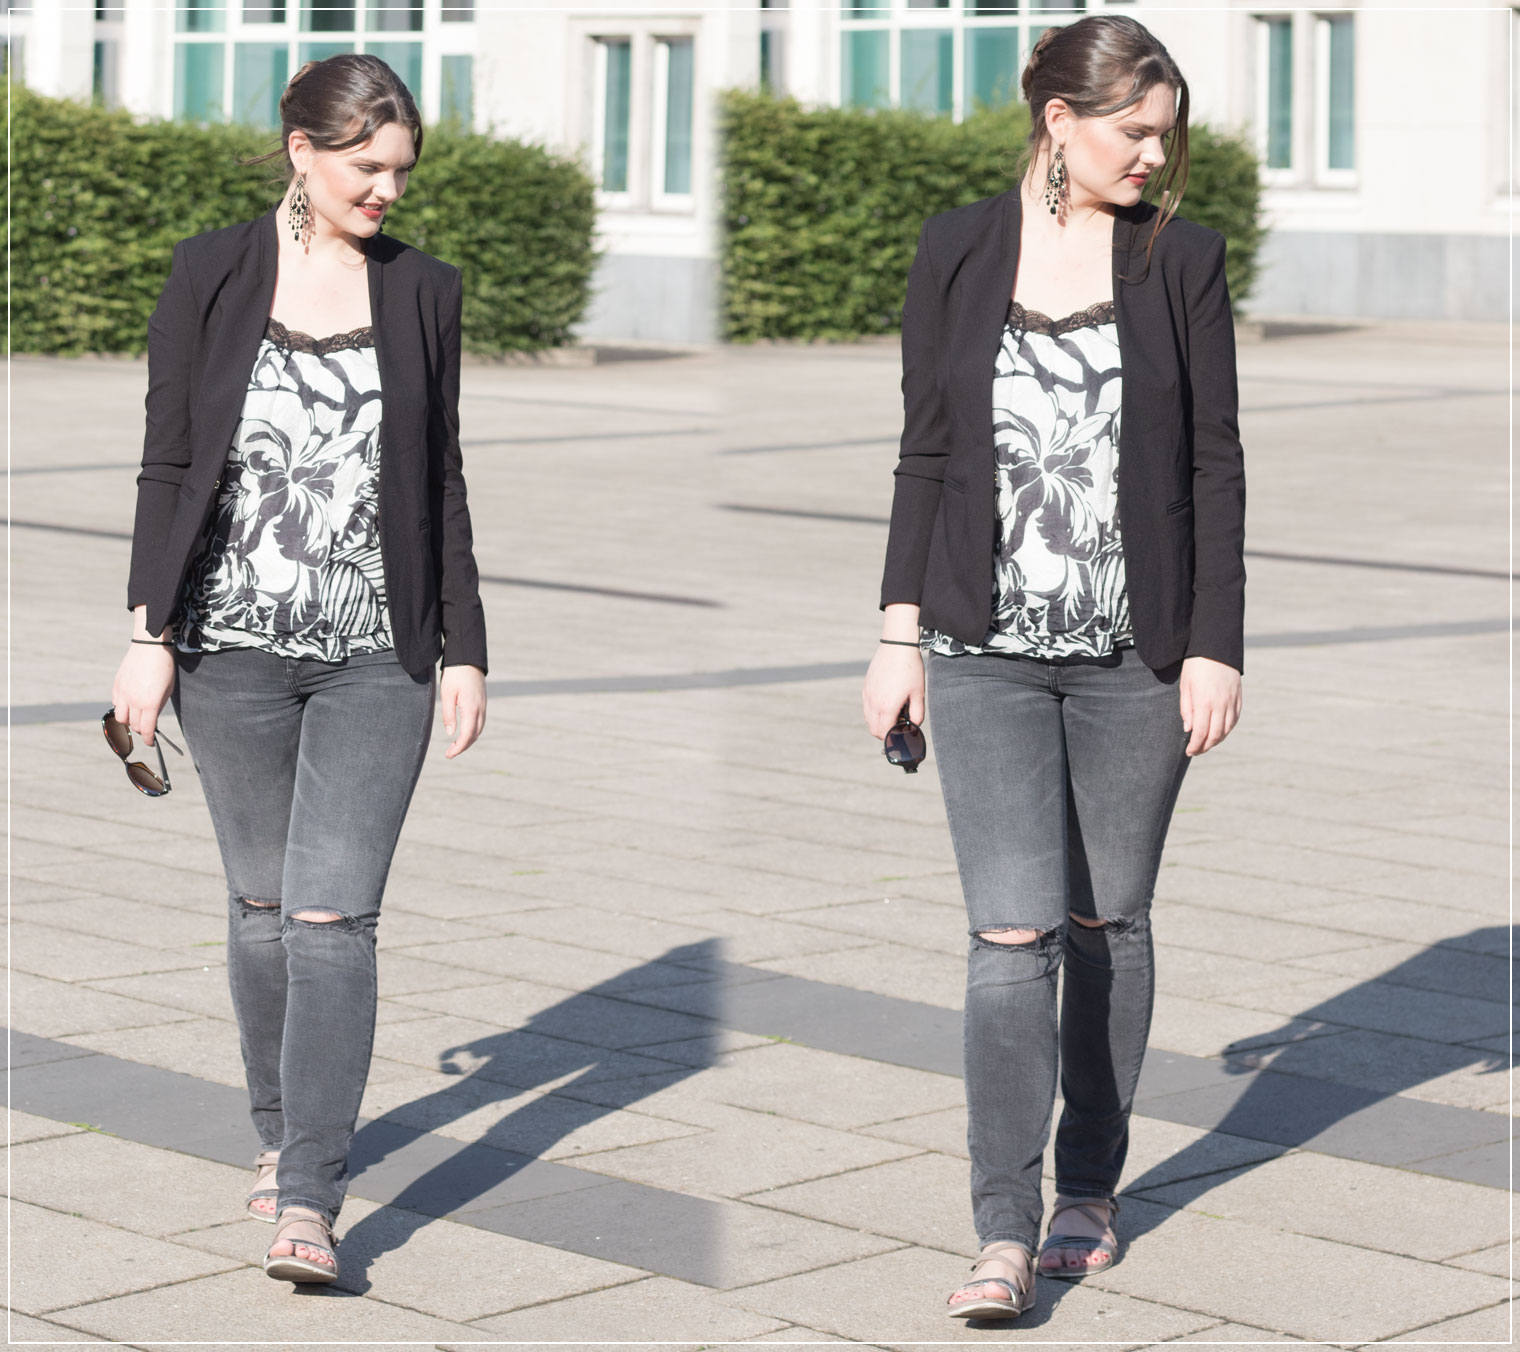 Ripped Jeans, flache Sandalen, Theaterabend, Sommerlook, Sommeroutfit, Eveninglook